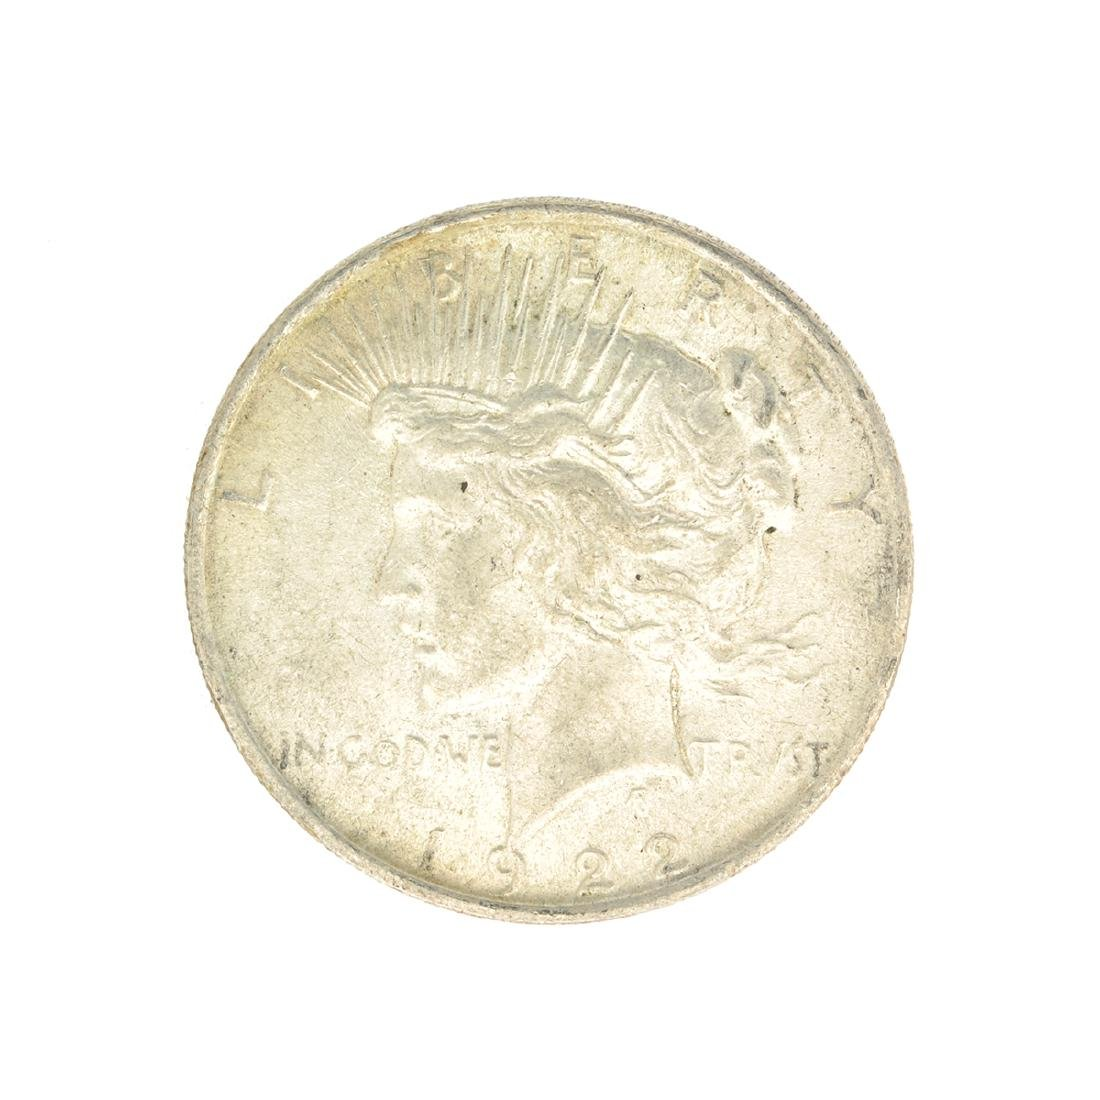 Rare 1922 U.S. Peace Type Silver Dollar